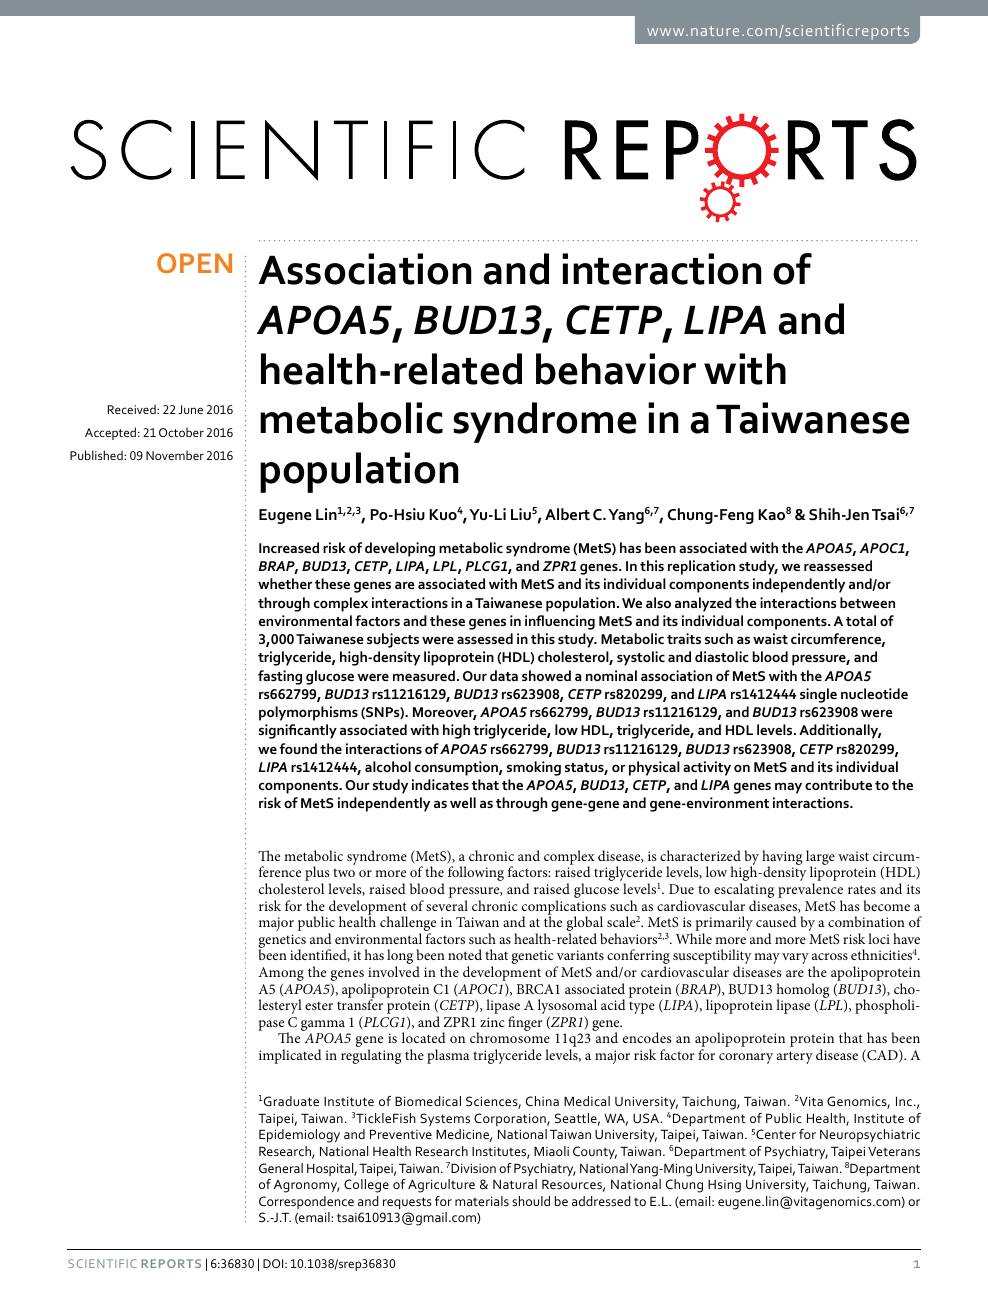 Association and interaction of APOA5, BUD13, CETP, LIPA and